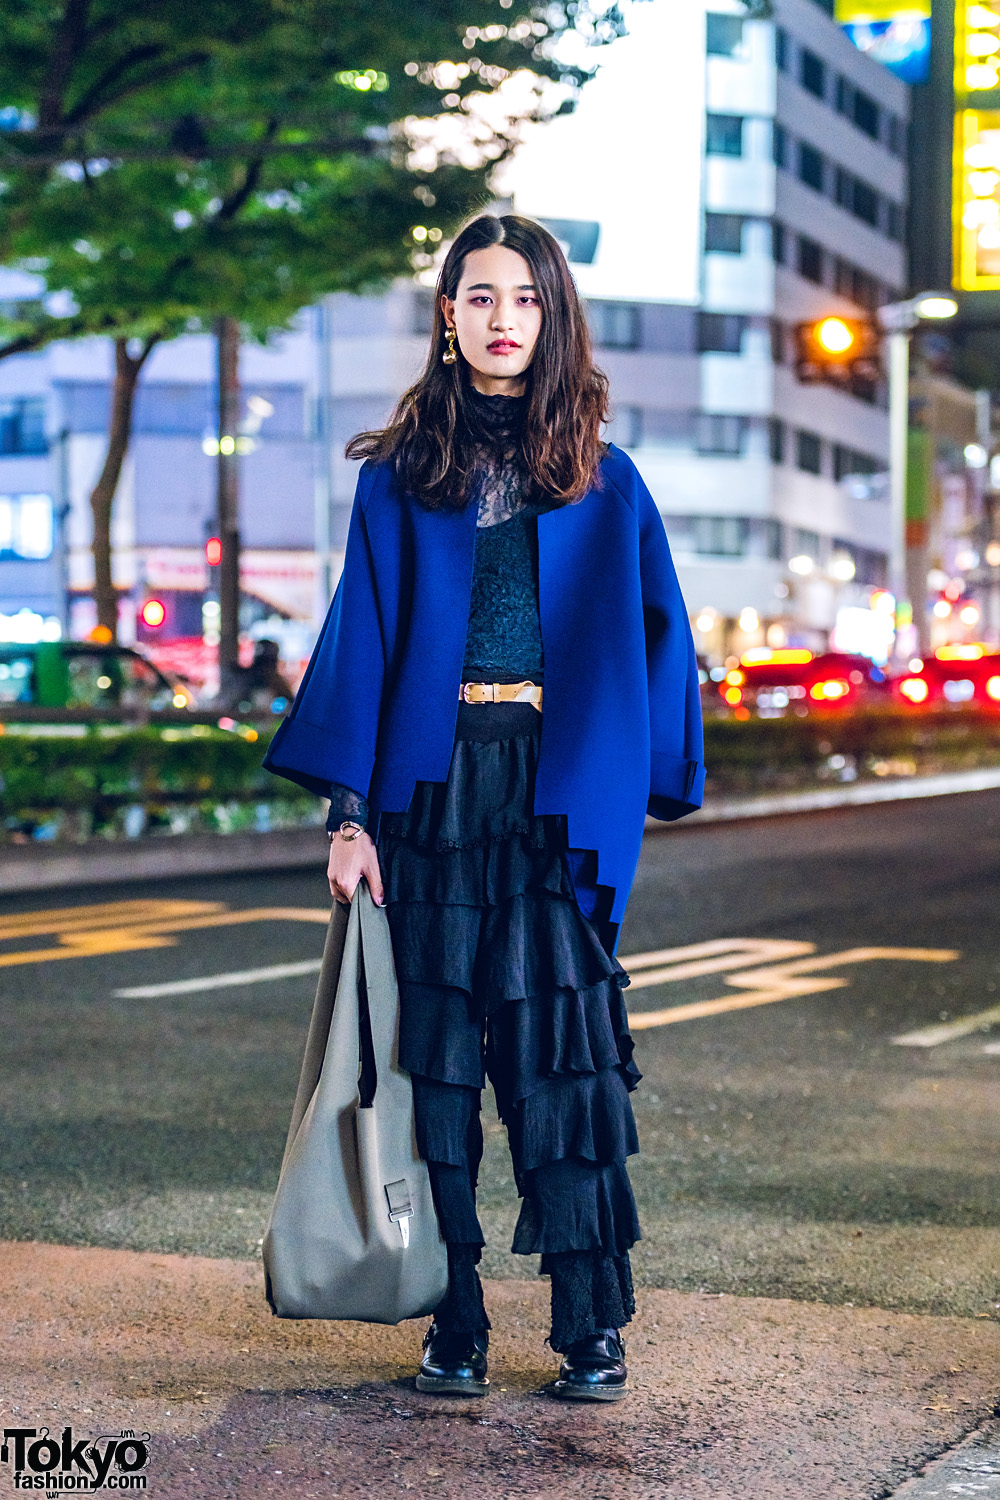 Gender Queer Fashion Designer in Harajuku w/ QFD Coat, Tiered Ruffle Pants, Dr. Martens Baby Doll Shoes & UNFLL Bag